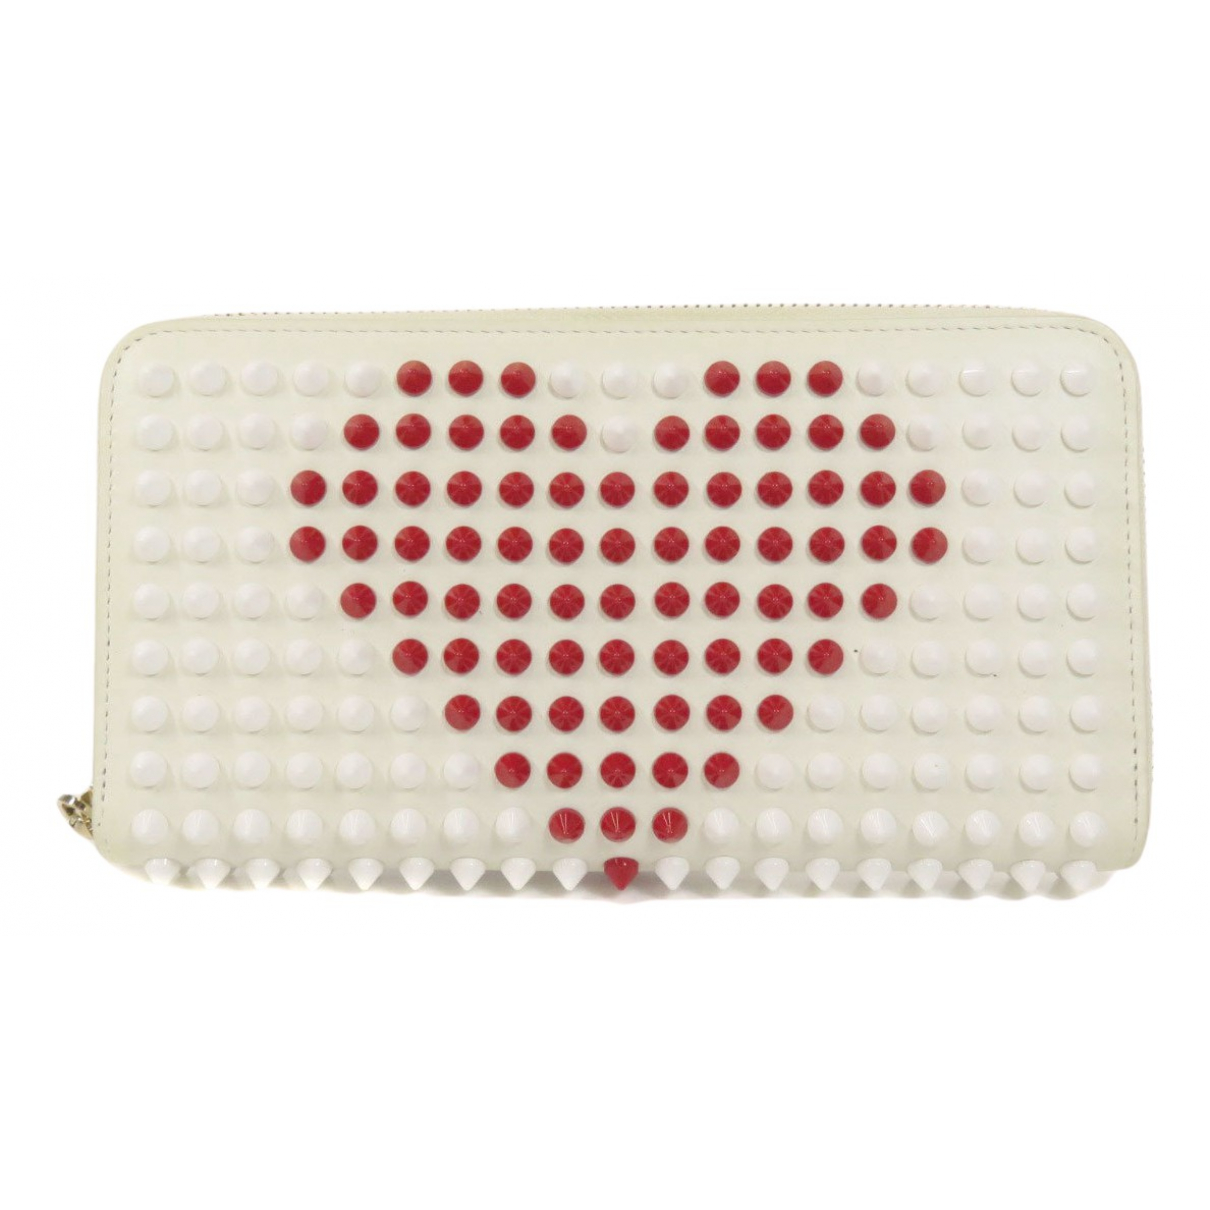 Christian Louboutin Panettone Portemonnaie in  Weiss Leder